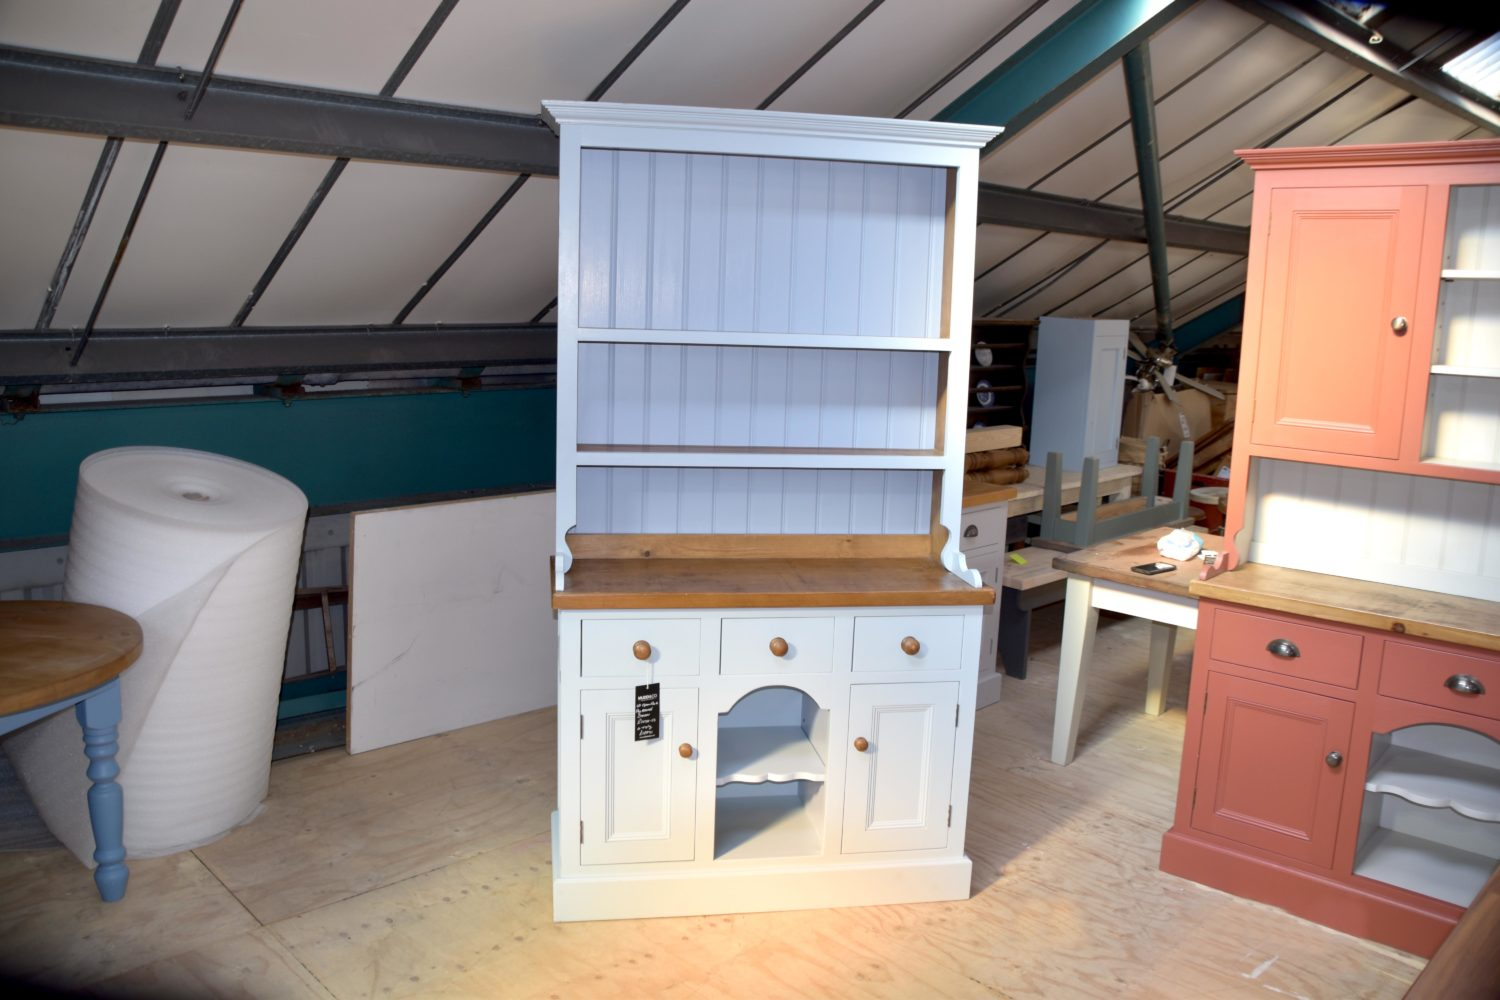 4ft Dog Kennel Dresser in the Mudd & Co factory sale 2020. Handcrafted kitchen and home furniture